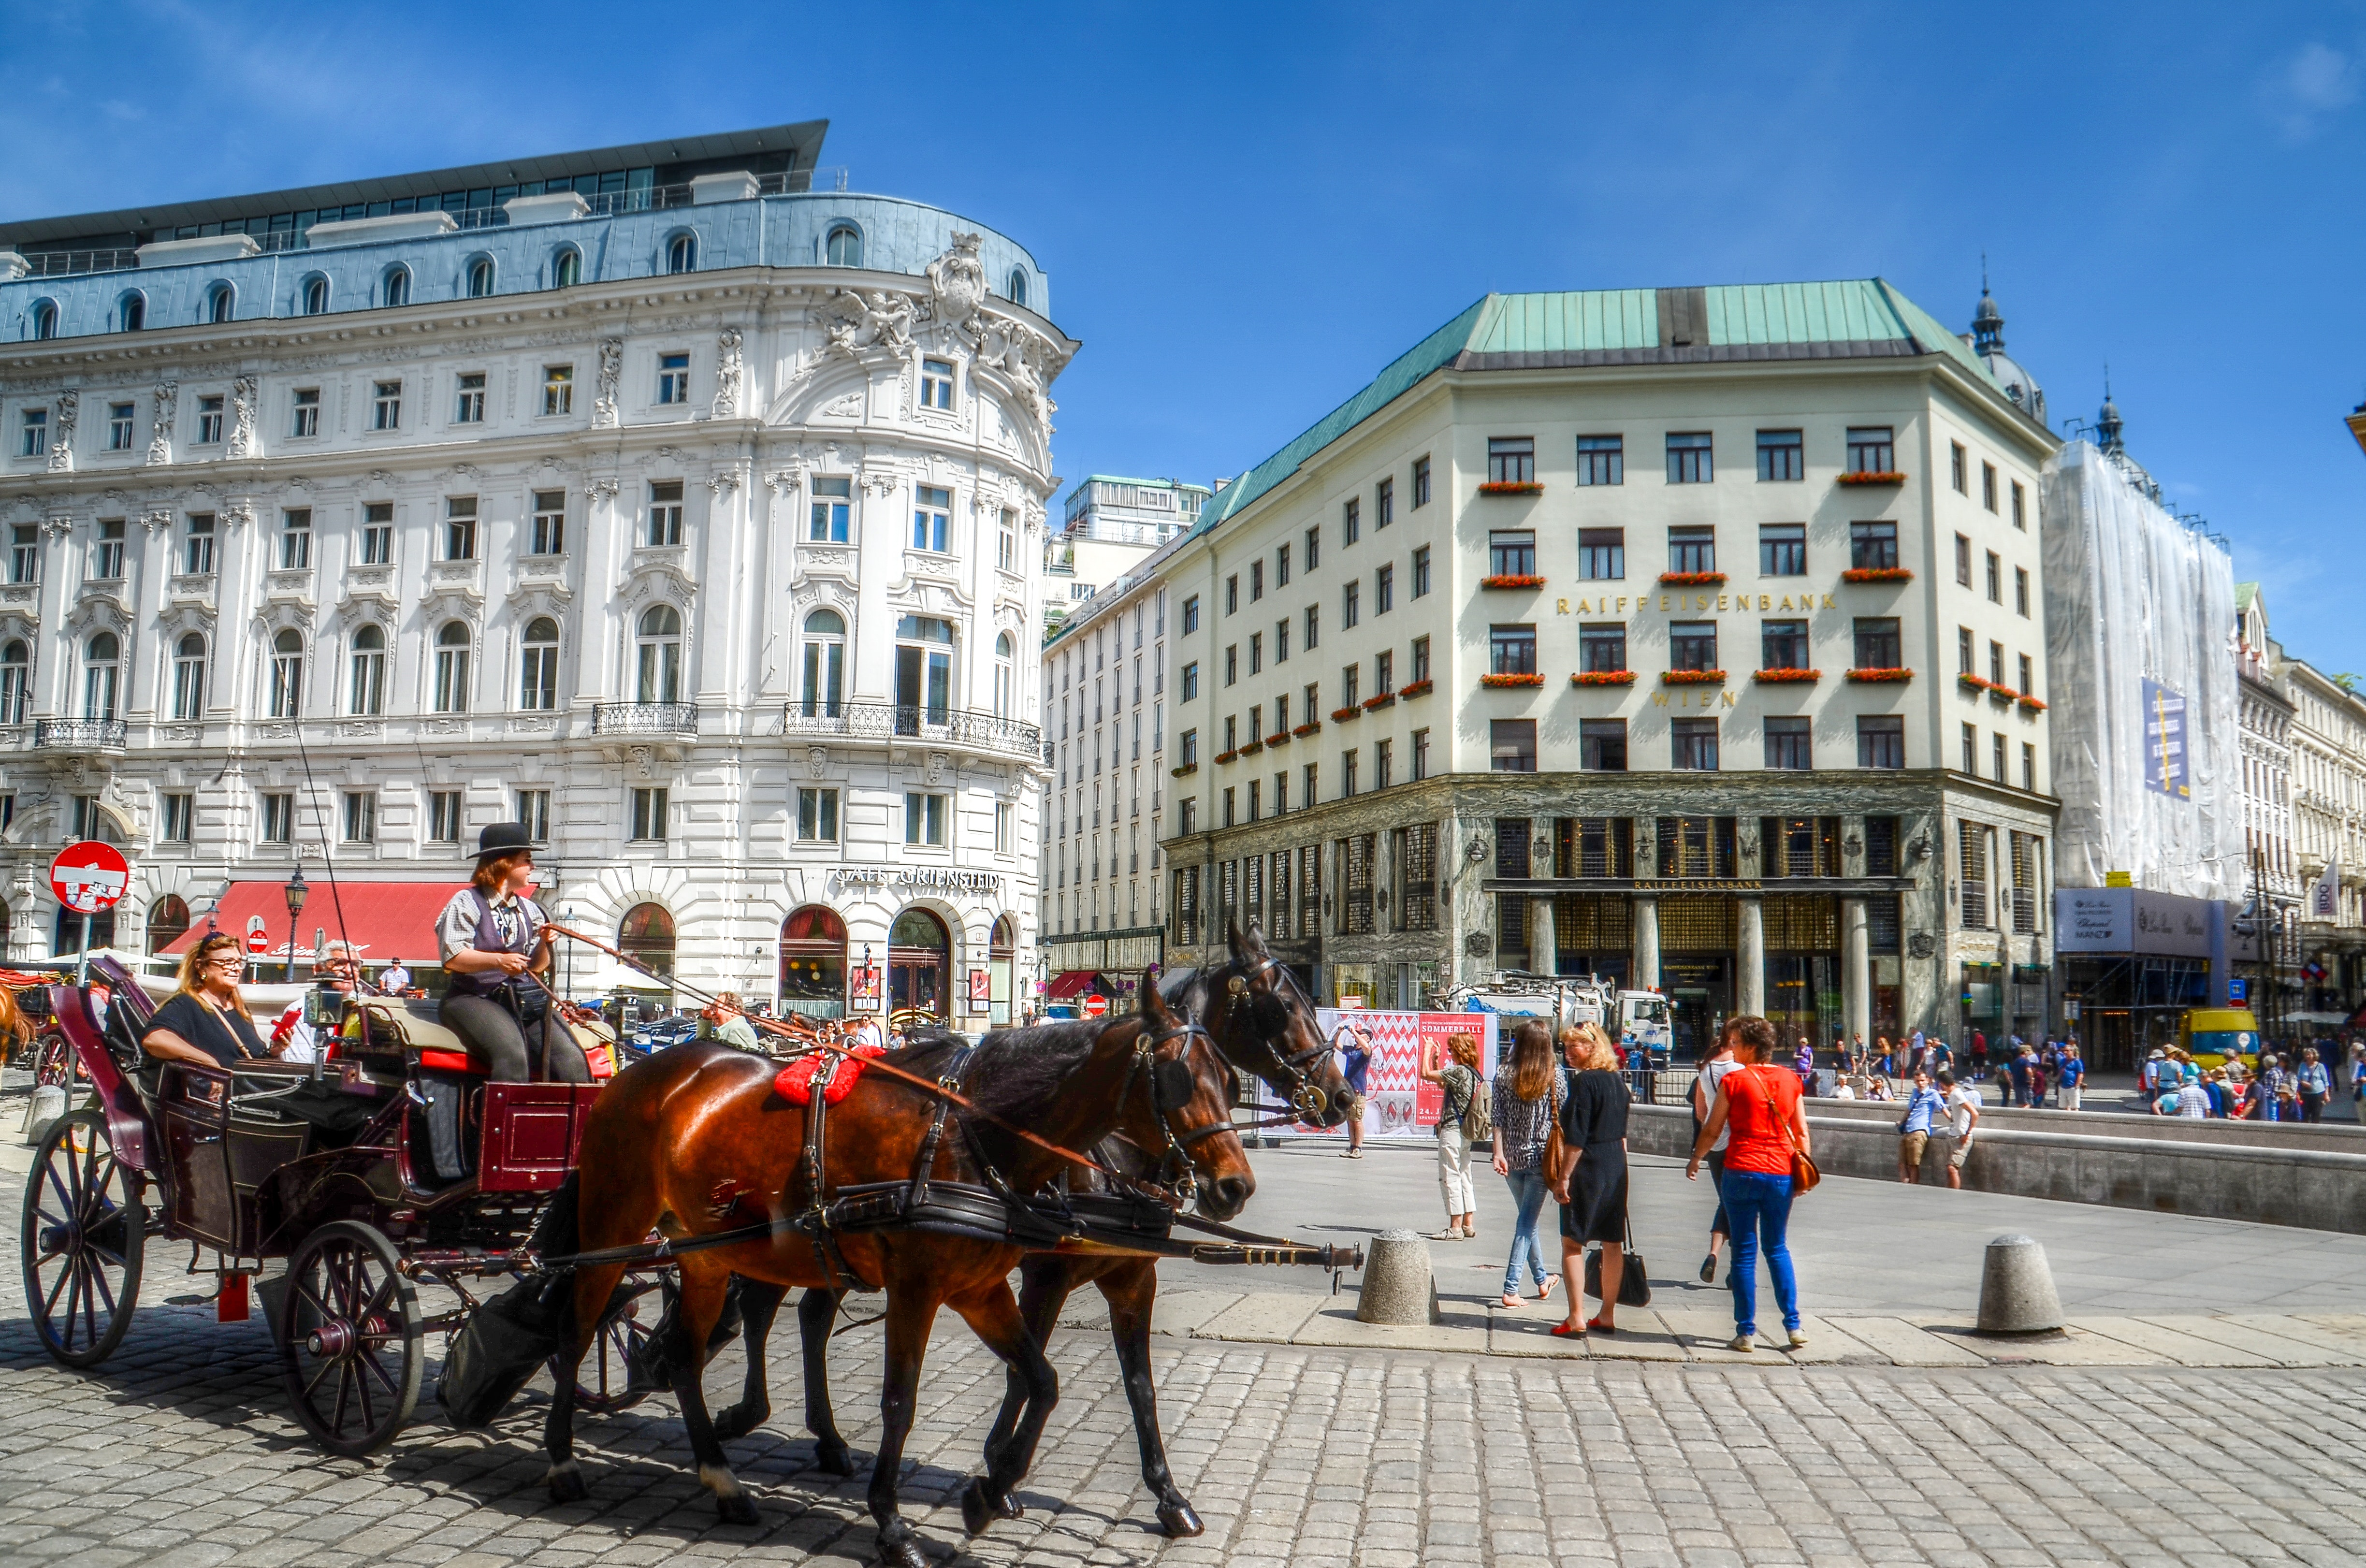 Person on Carriage With Two Horses Near Concrete Building, Architecture, People, Urban, Tourist, HQ Photo